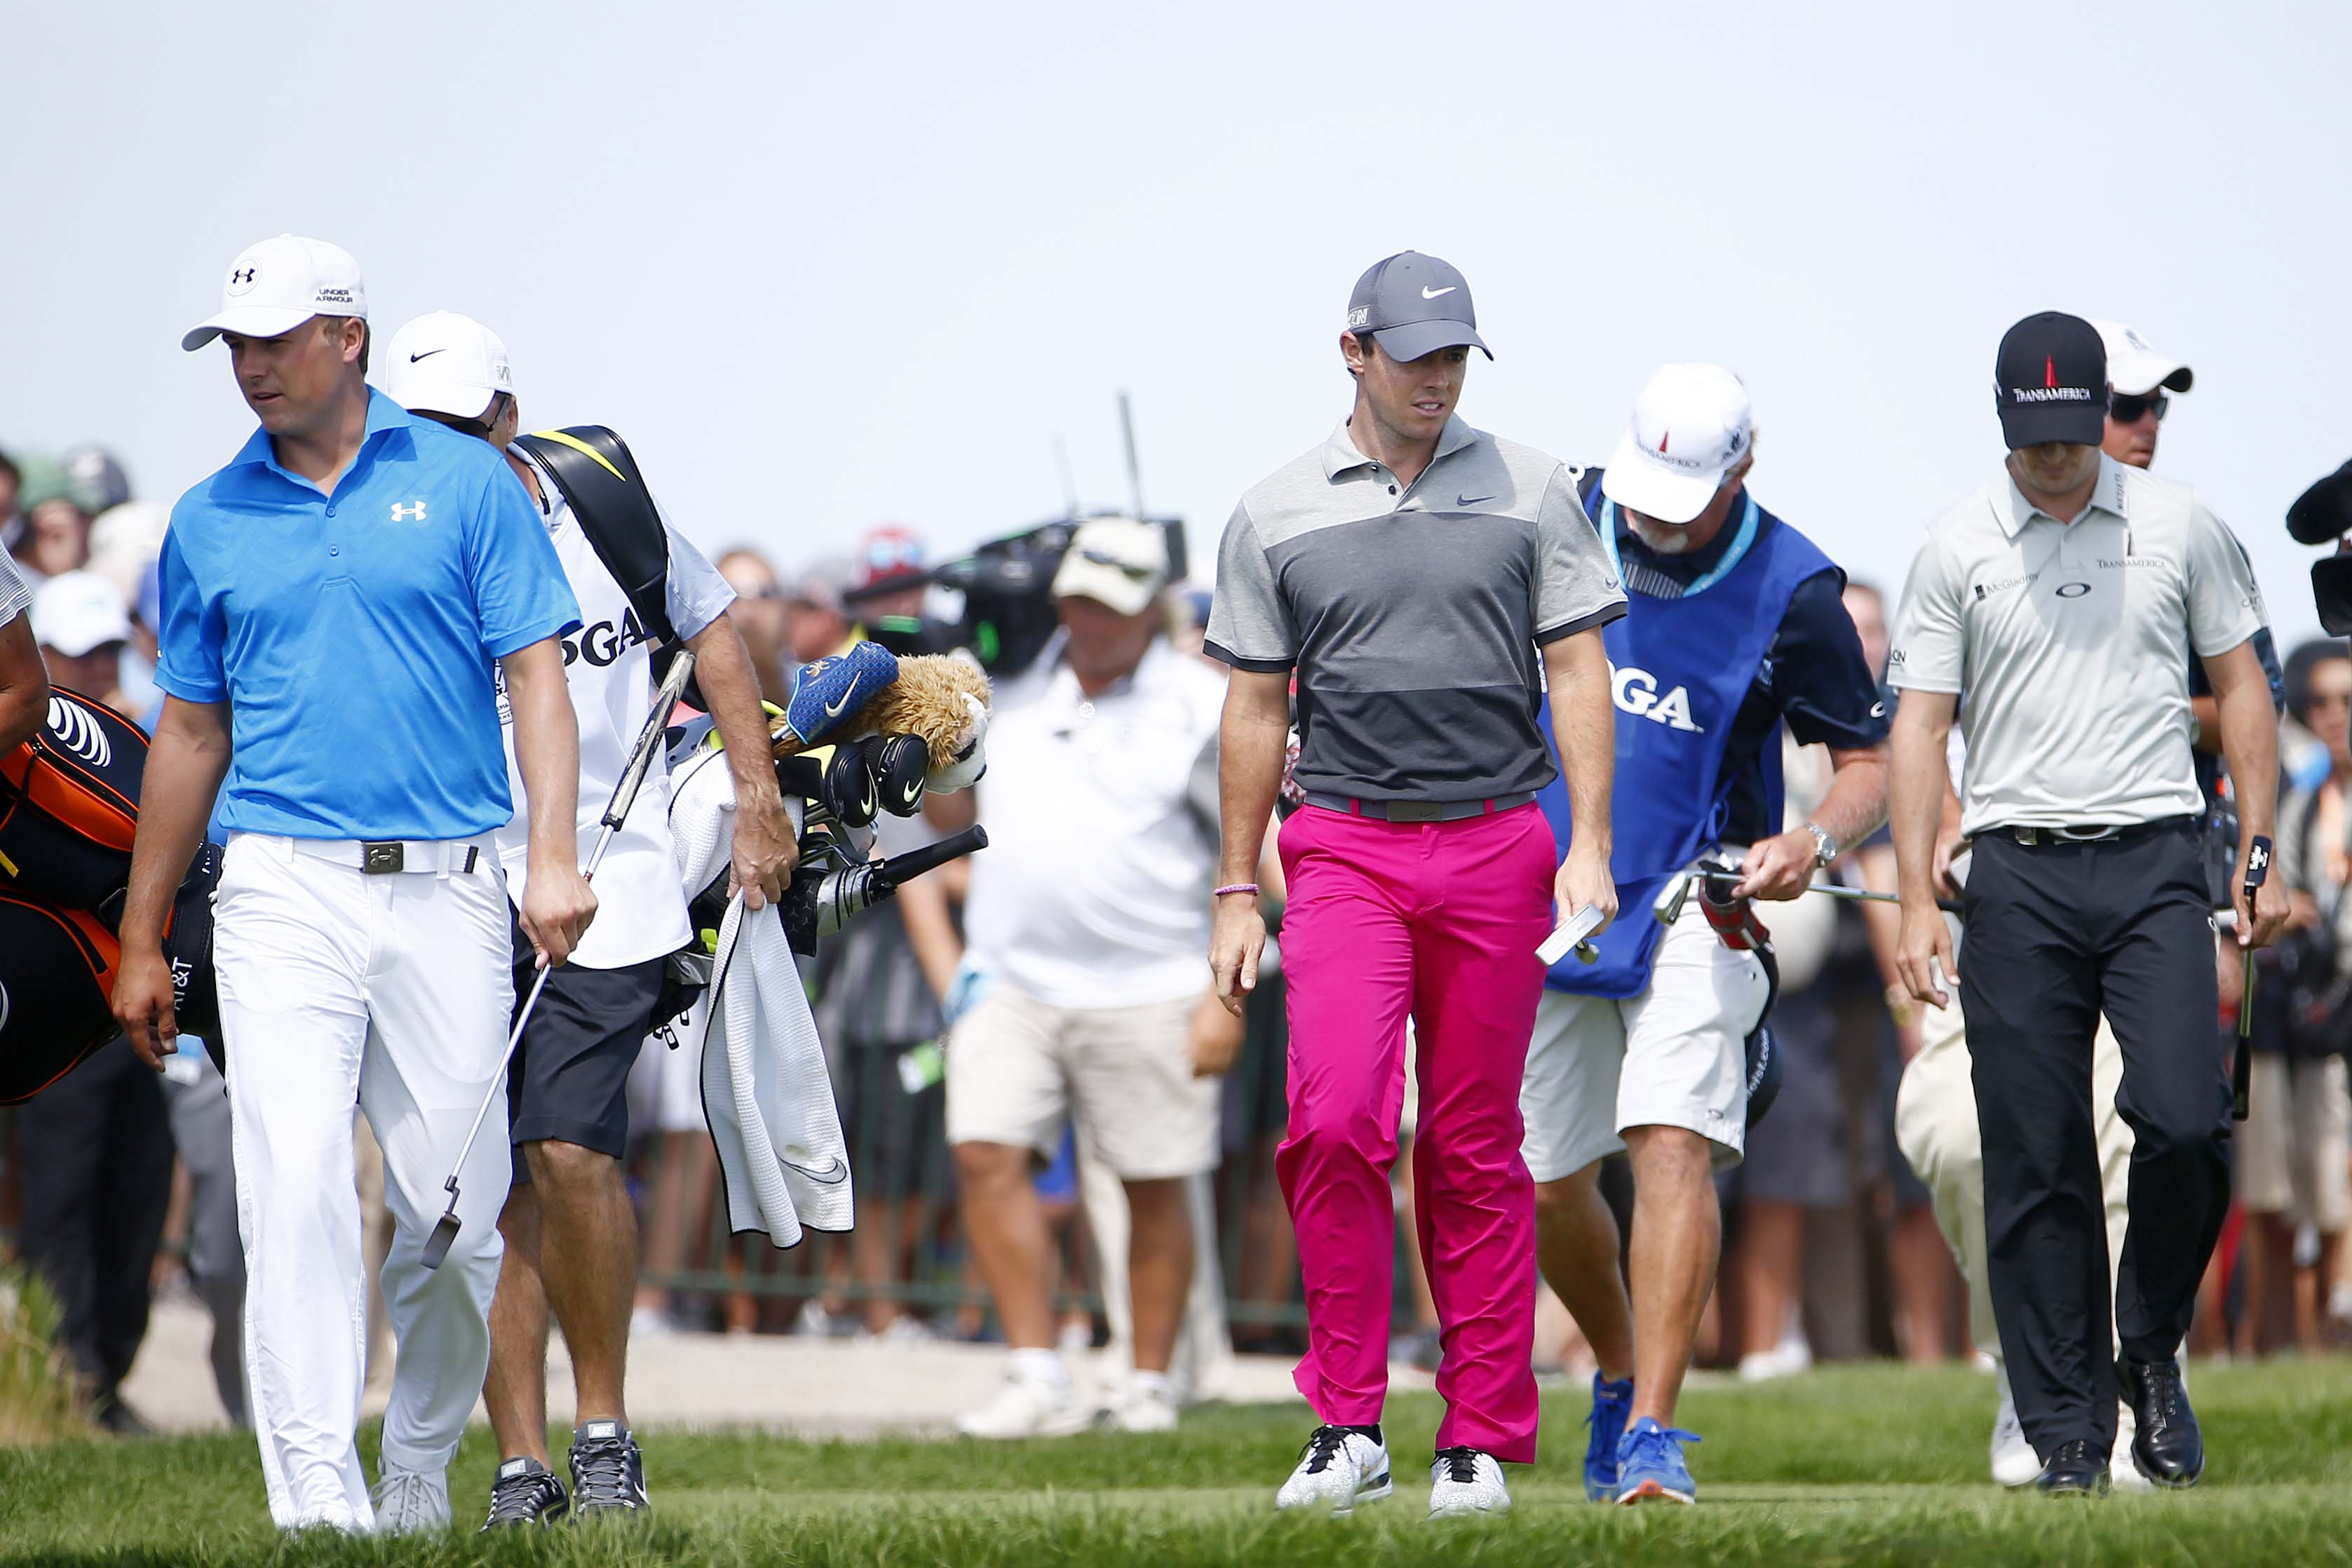 Jordan Spieth, Rory McIlroy and Zach Johnson